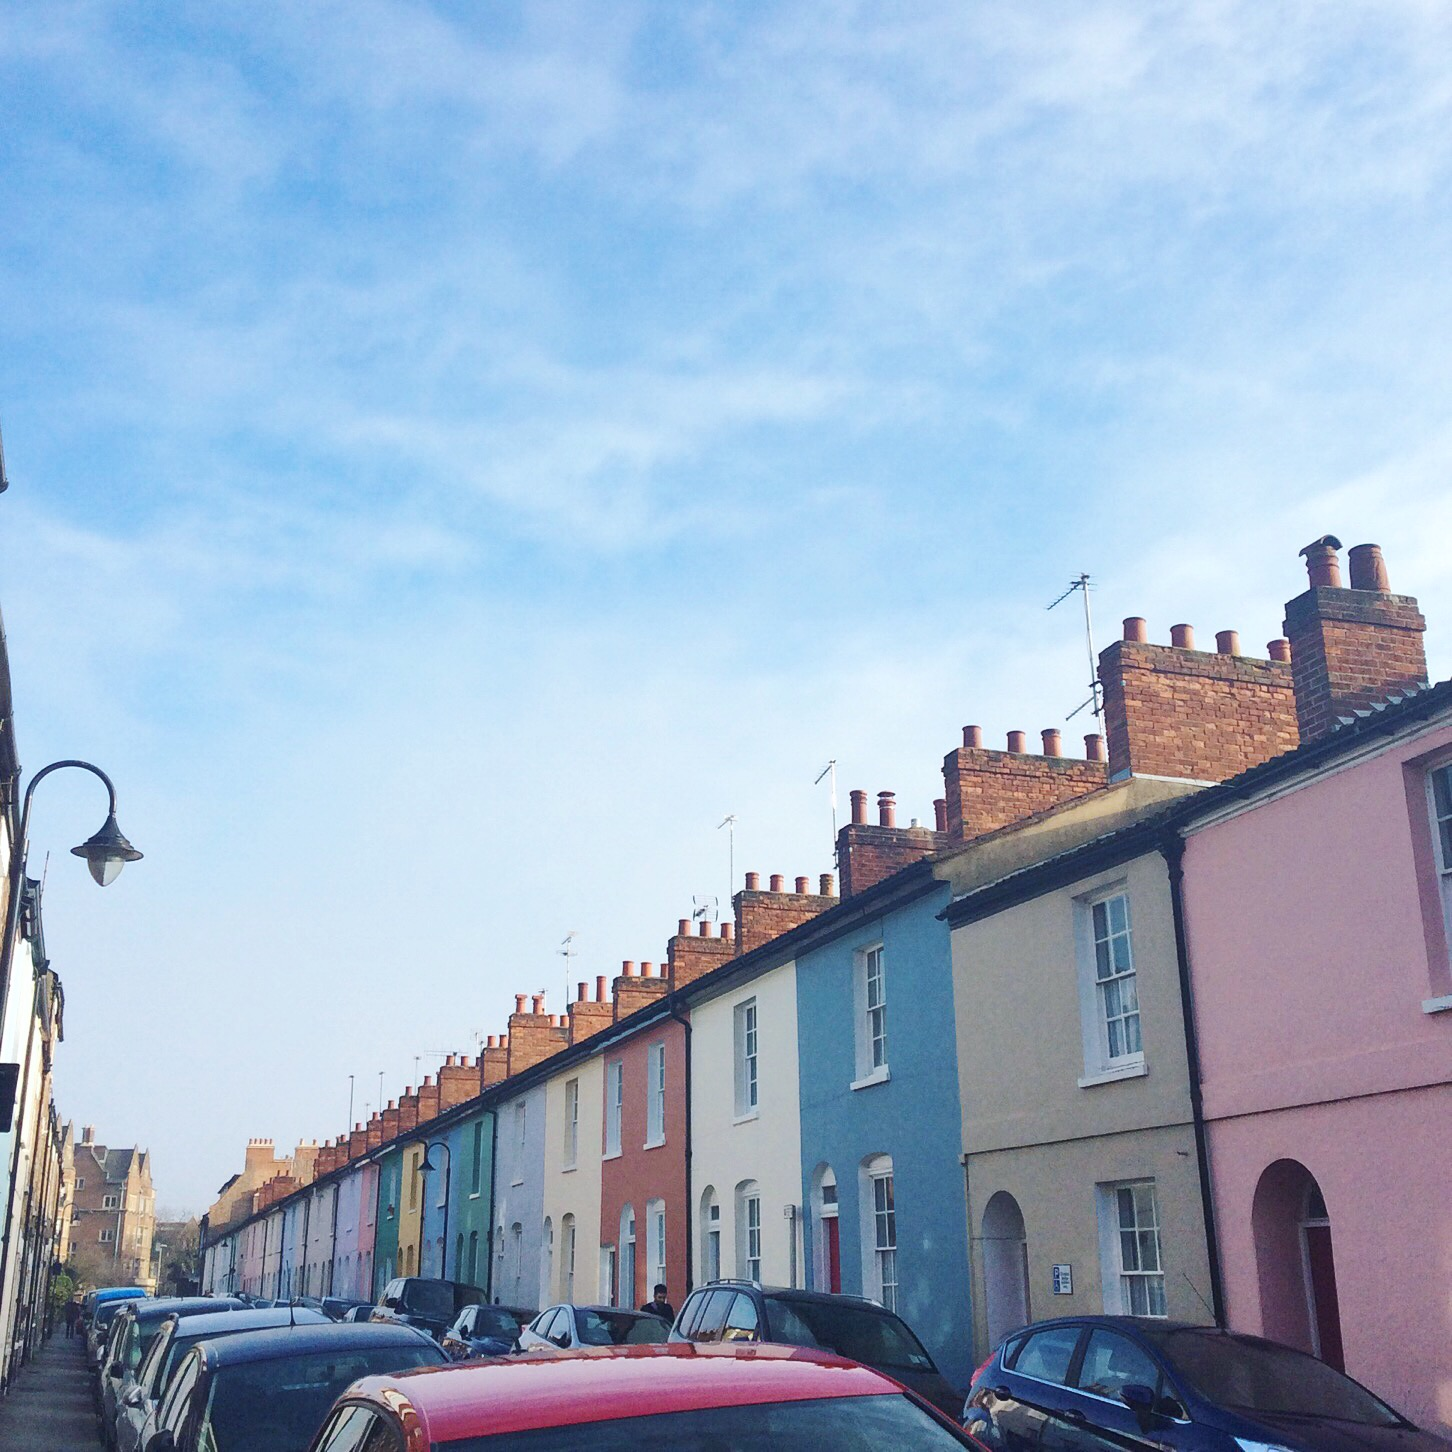 jericho colorful houses oxford